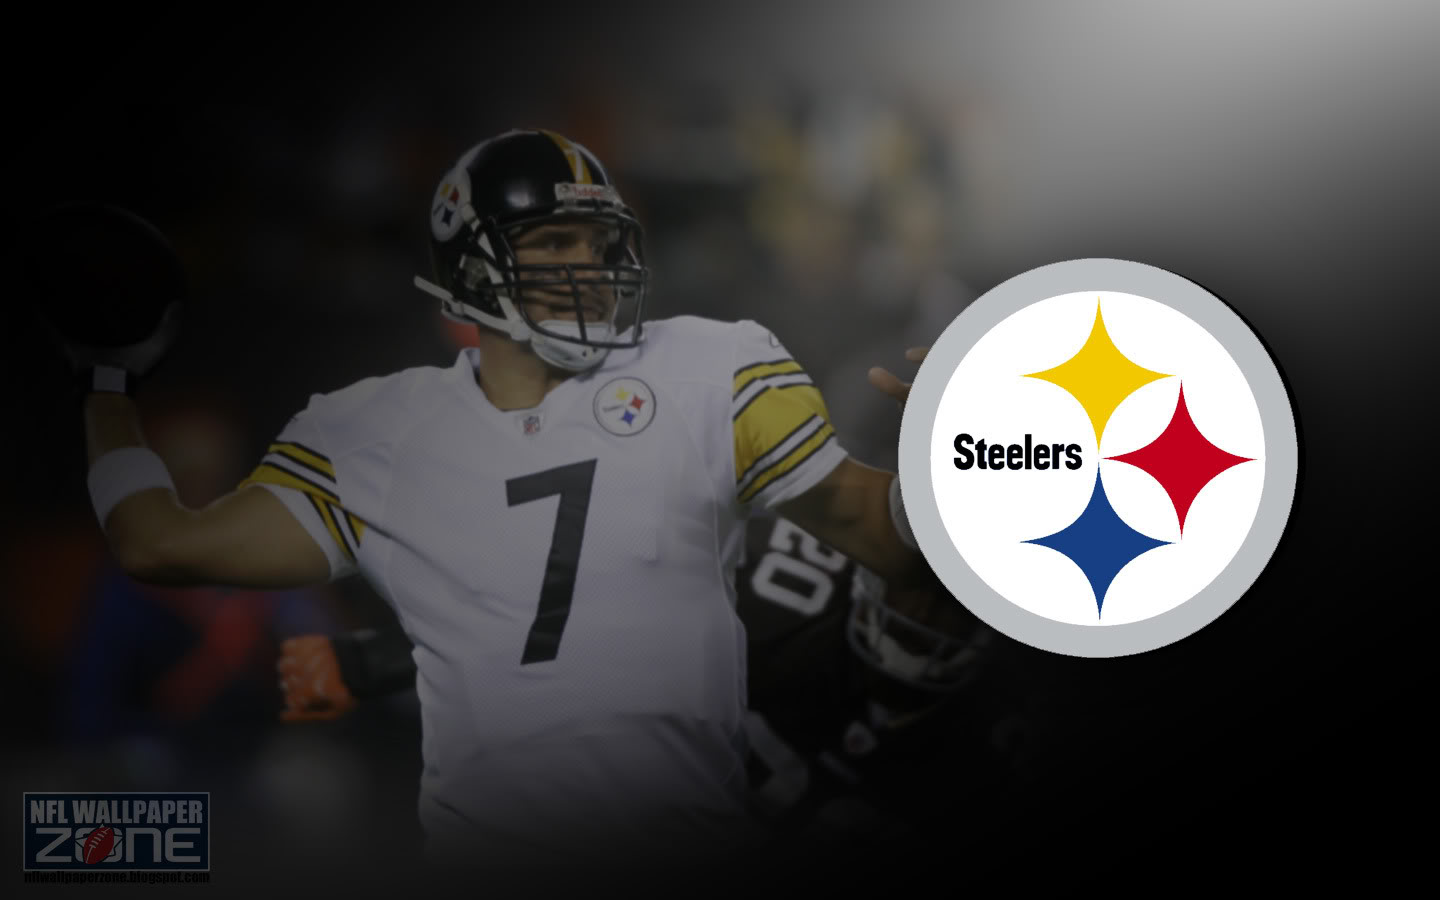 Steelers wallpaper HD background Pittsburgh Steelers wallpapers 1440x900